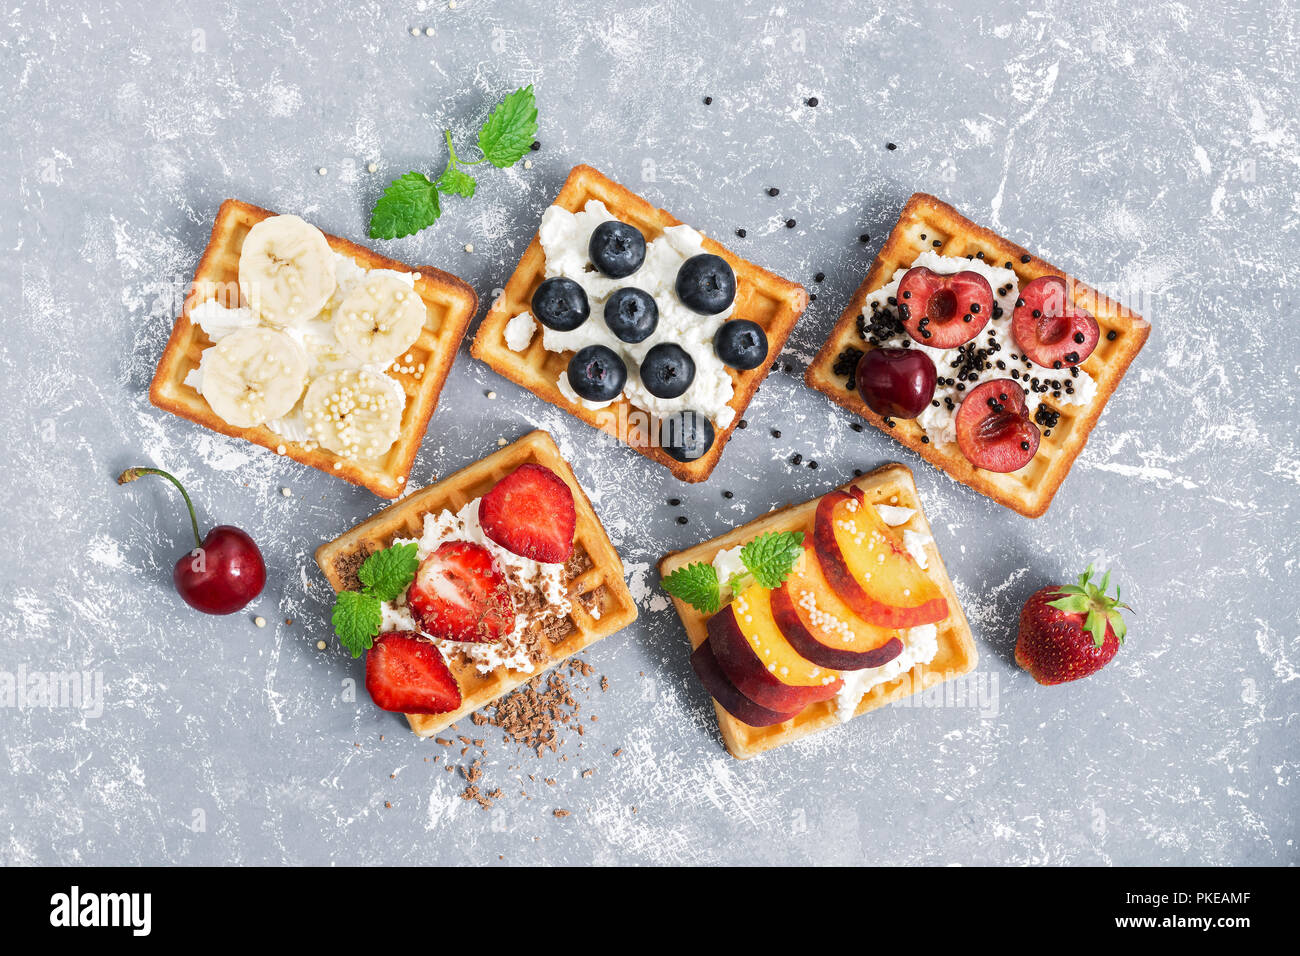 A view from above of a wafer with a cream of fruit and berries on a gray background. Traditional Belgian waffles - Stock Image